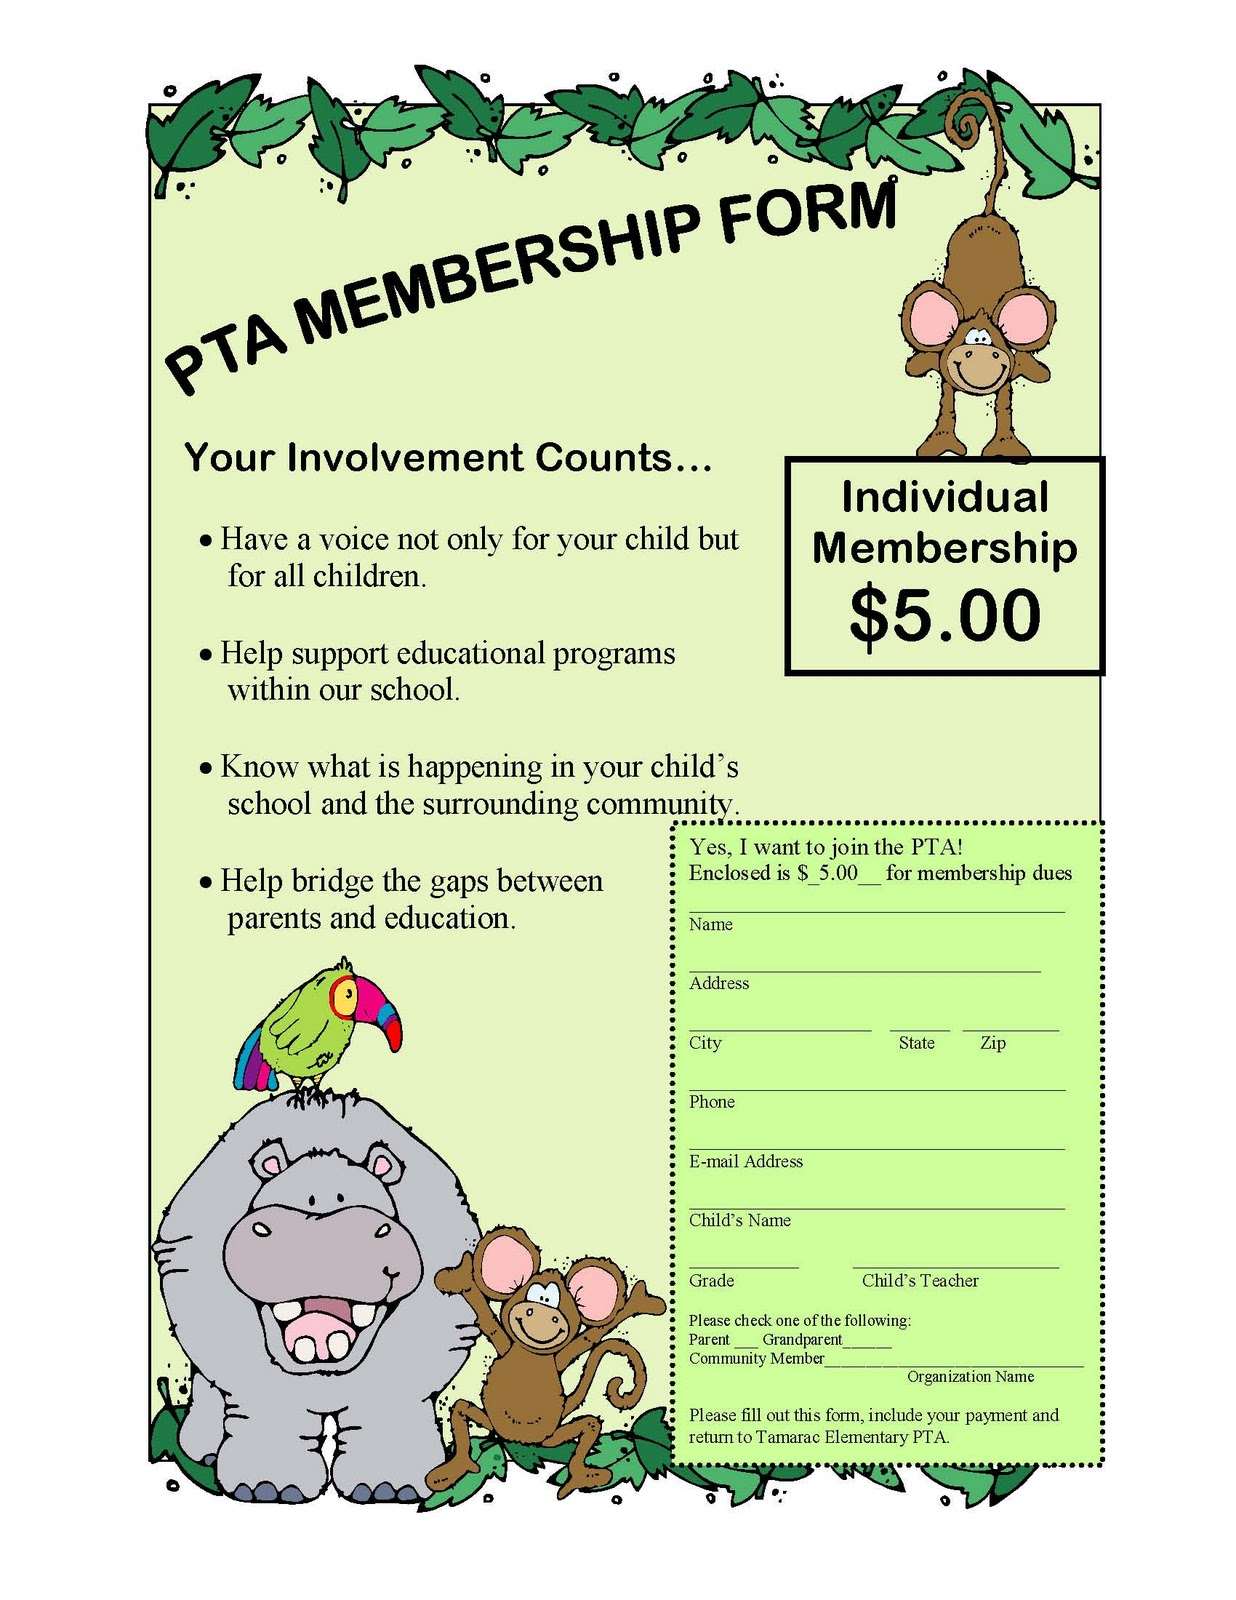 Tiger news pta membership drive through october 31st for Pta bylaws template